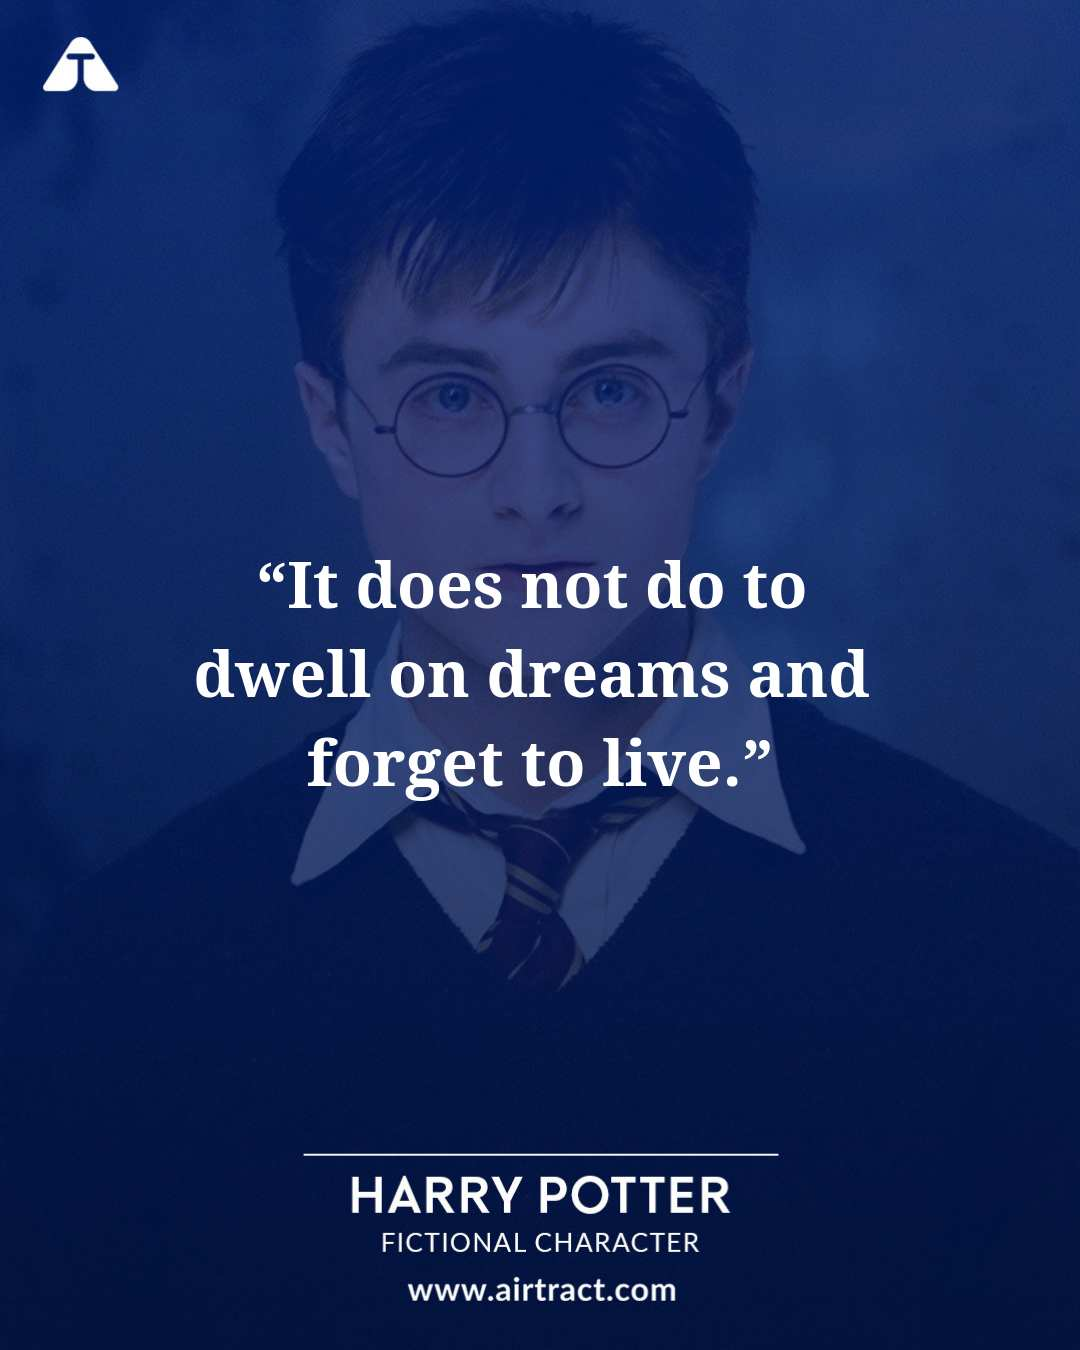 inspiring harry potter quotes we ll never forget airtract